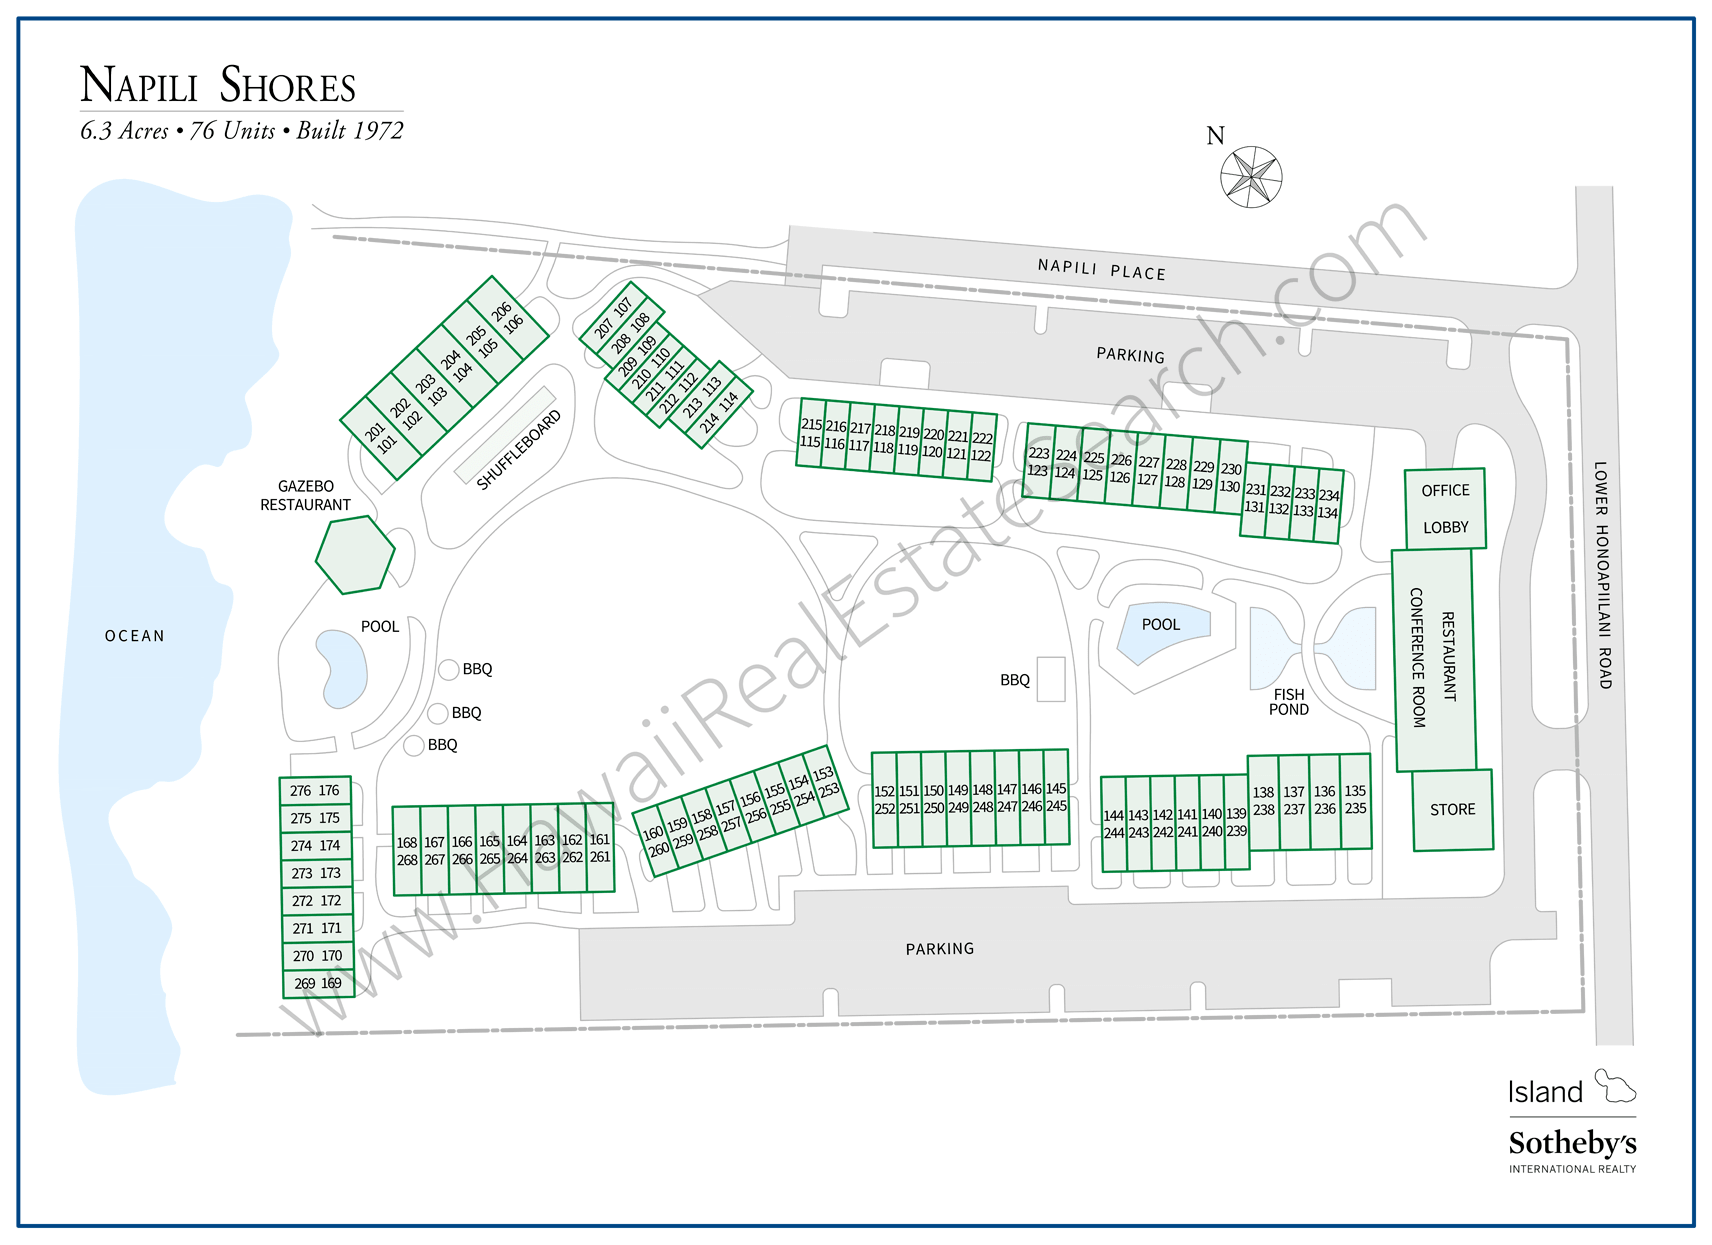 Napili Shores Property Map Updated 2018